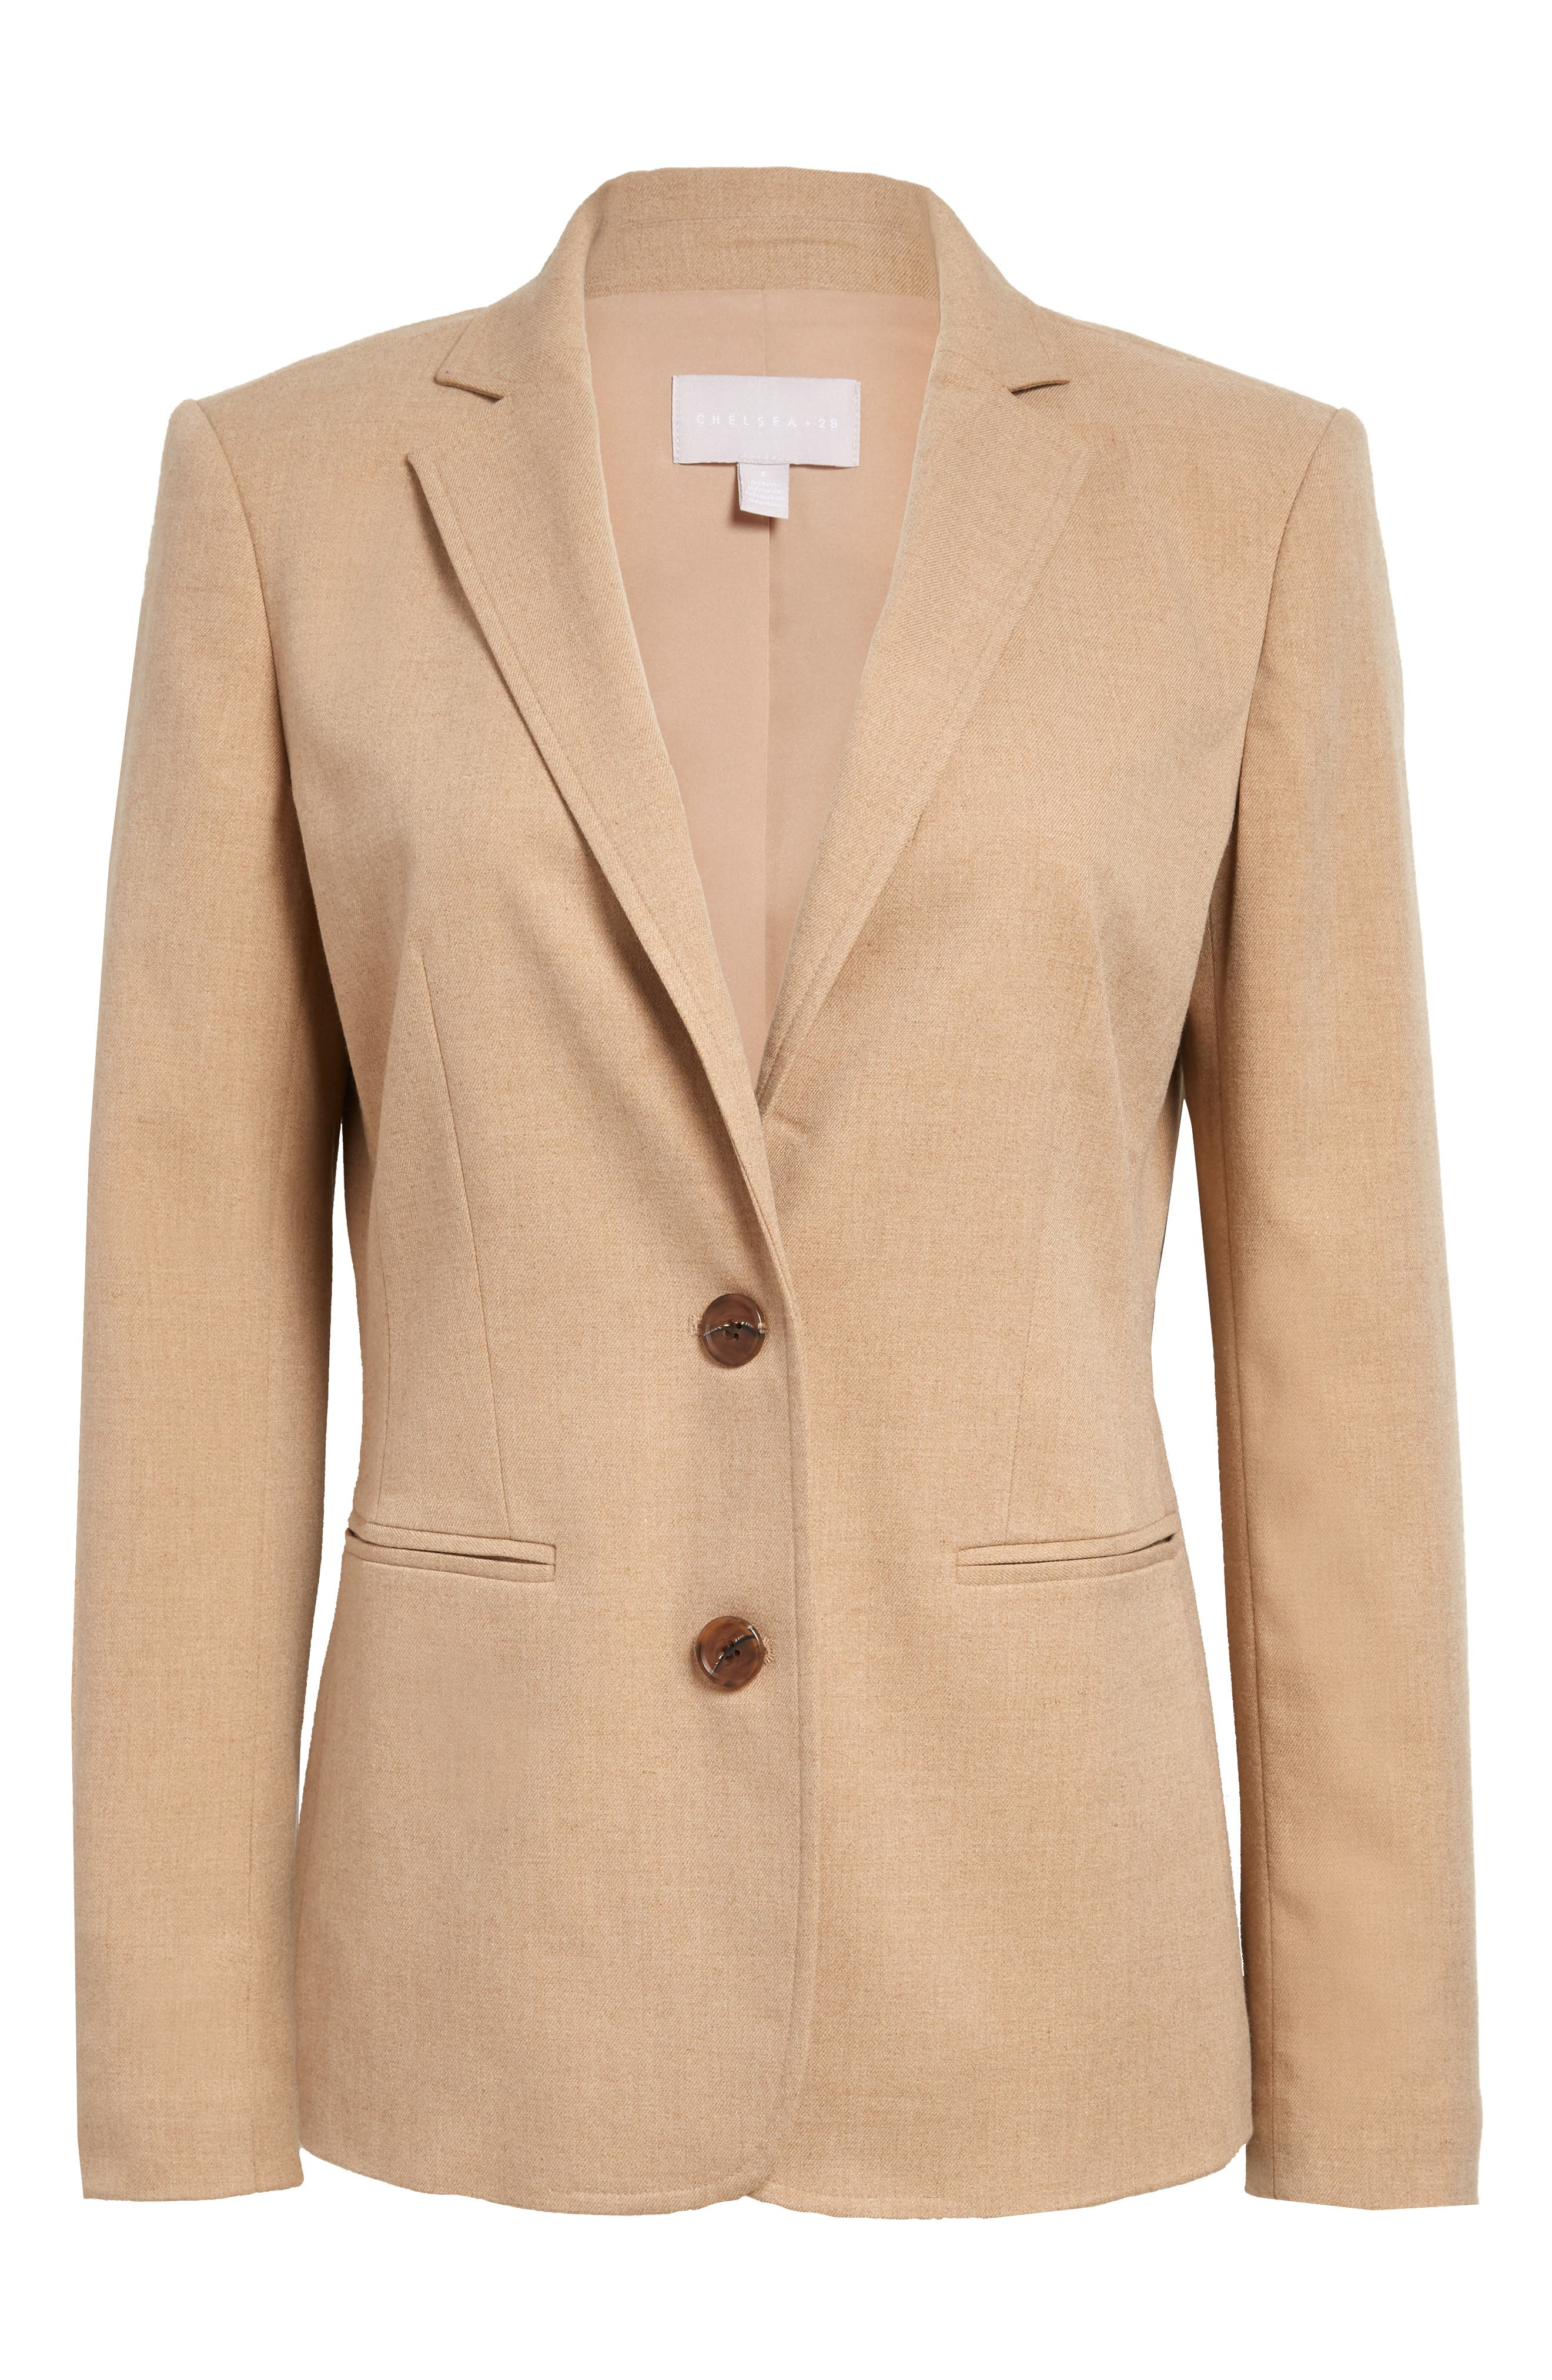 1940s Style Coats and Jackets for Sale Womens Chelsea28 Twill Blazer Size XX-Large - Brown $77.40 AT vintagedancer.com